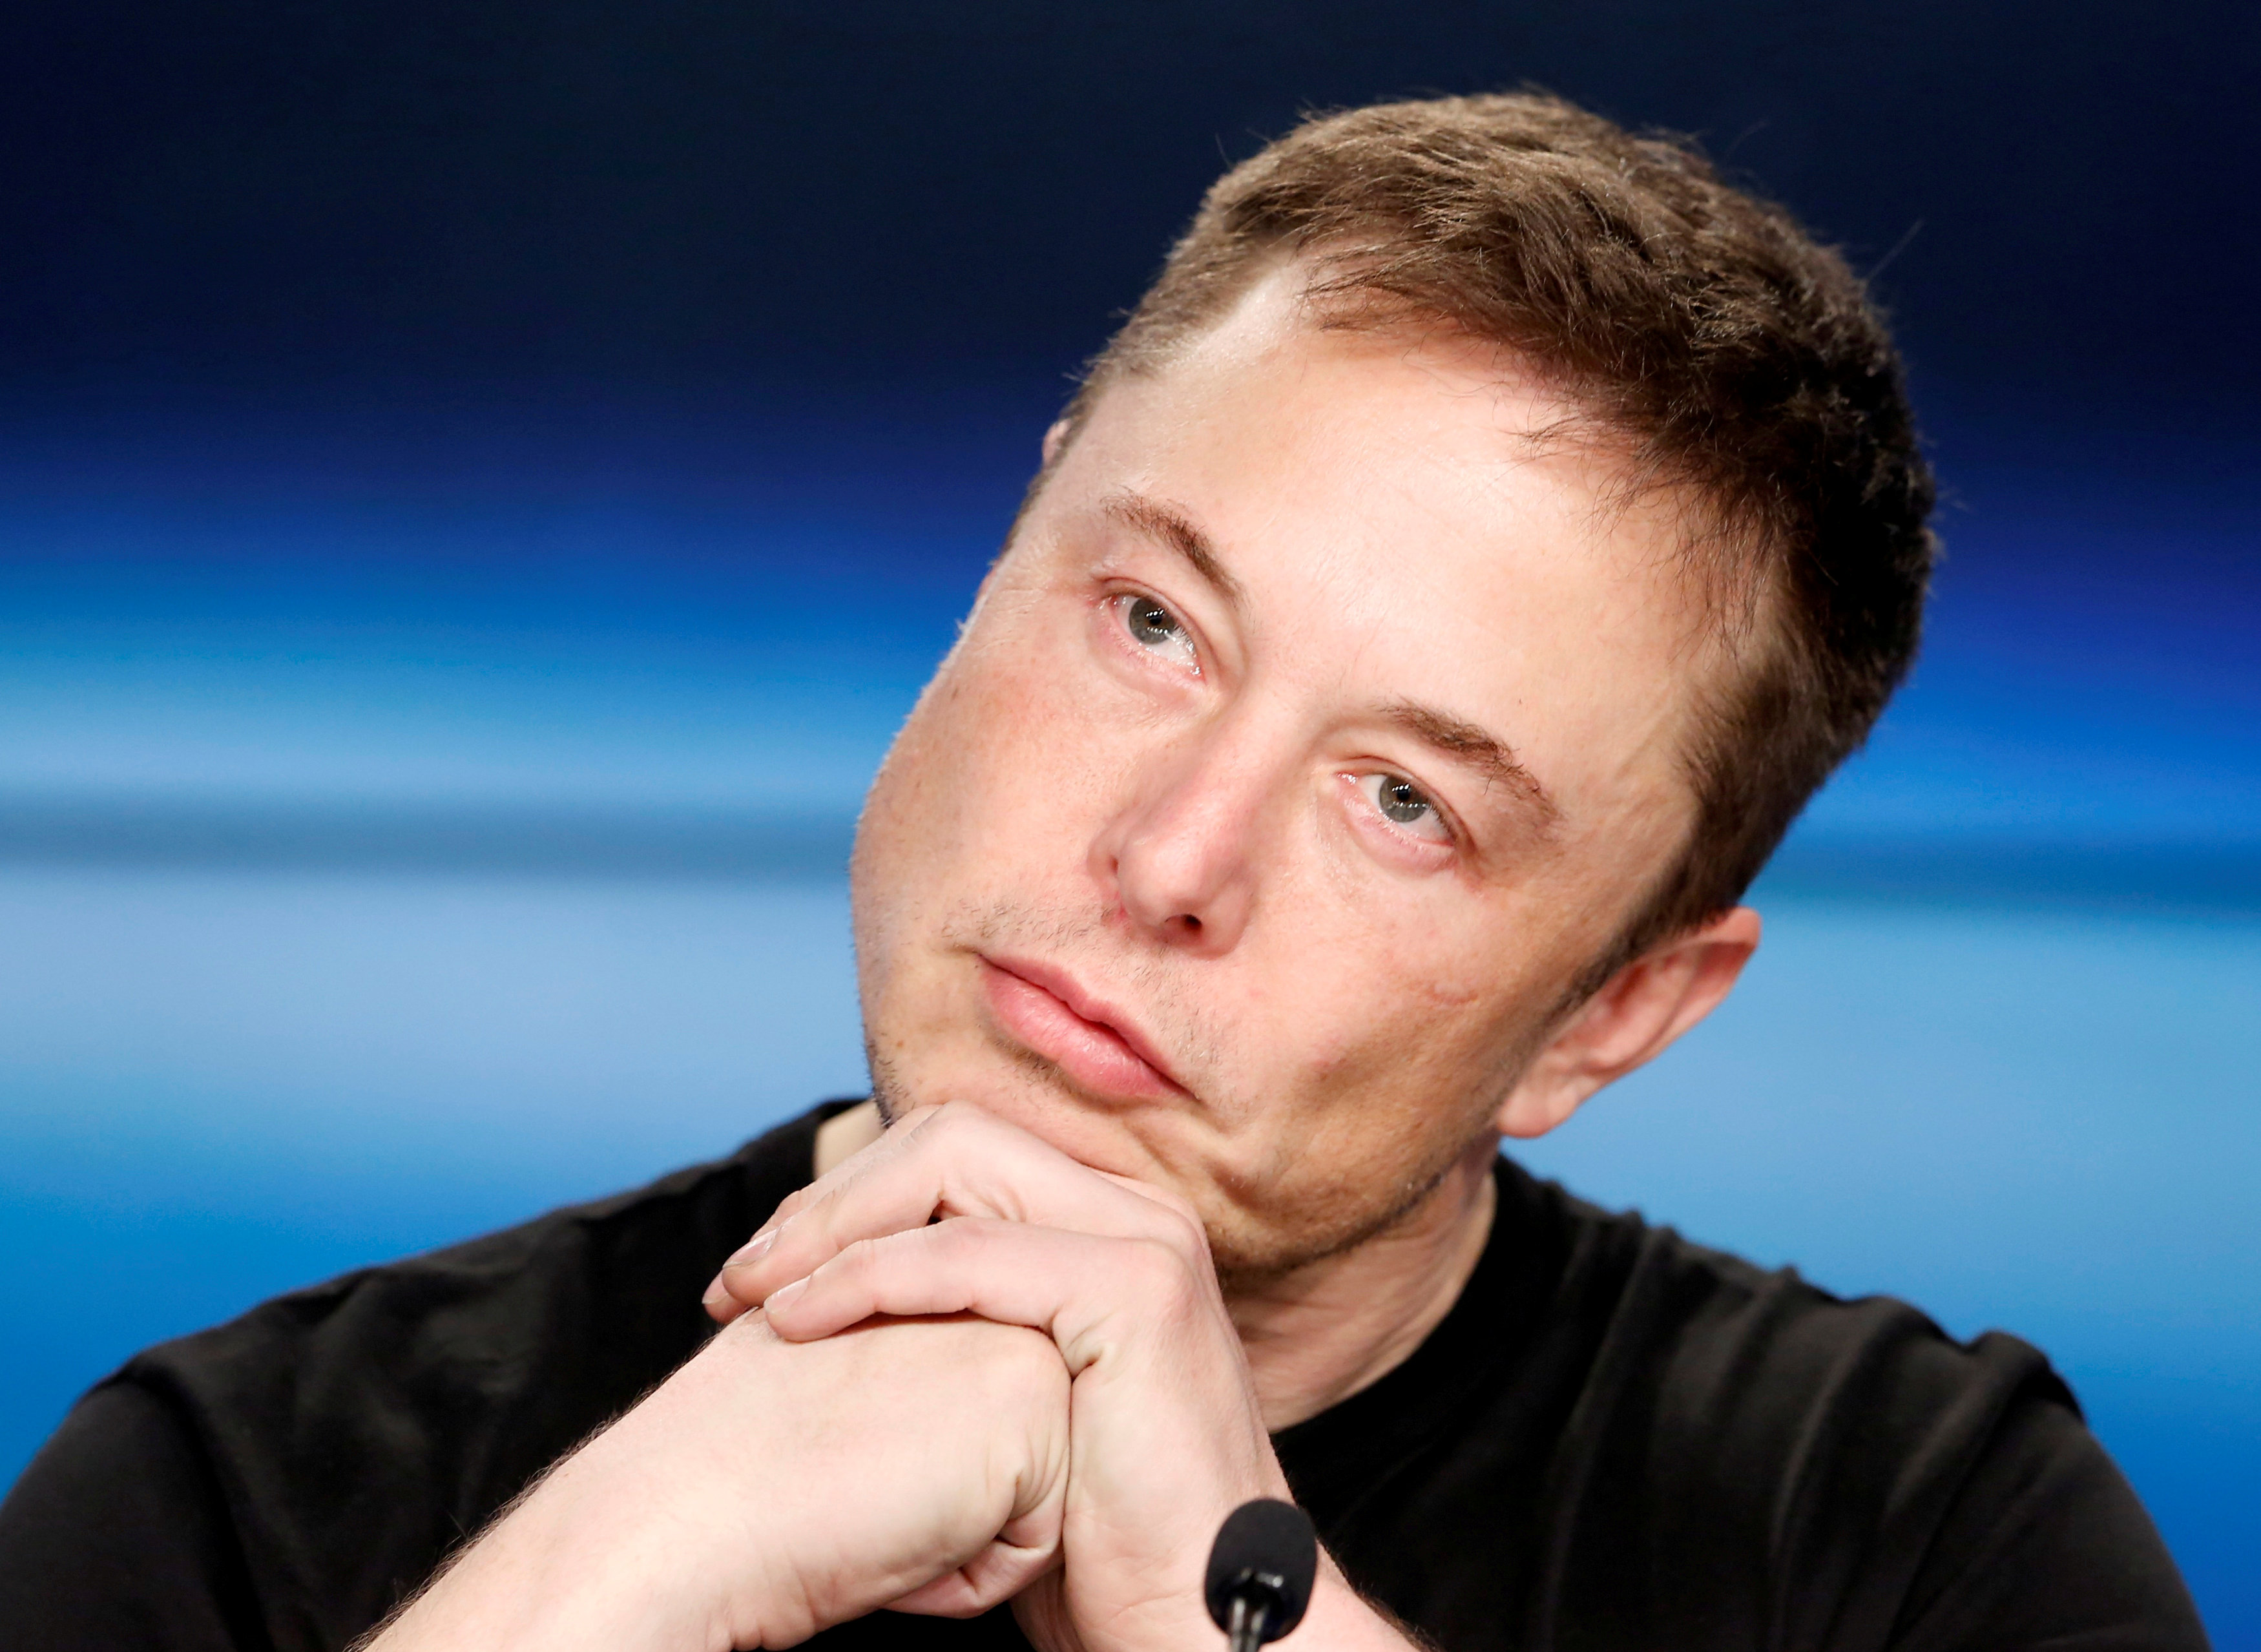 Elon Musk said on Tuesday that taking Tesla private may be the 'best path forward' for the company. Photo: Reuters